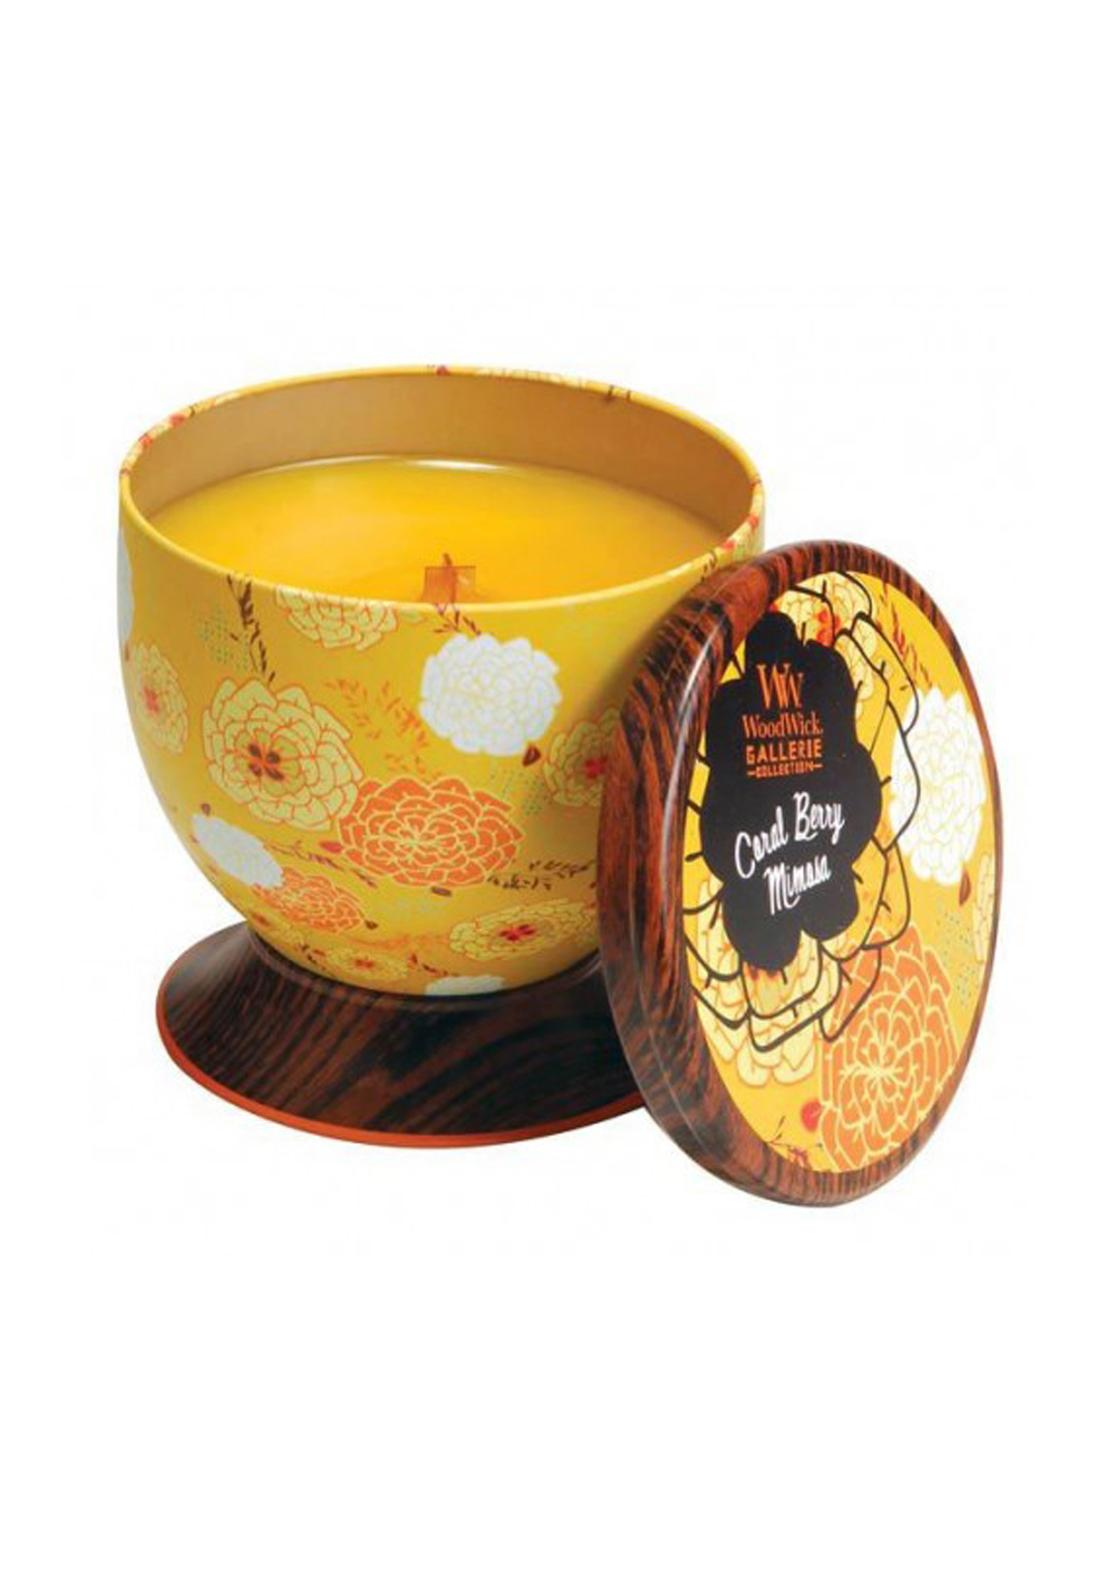 Woodwick Gallerie Collection, Scented Candle, Coral Berry Mimosa